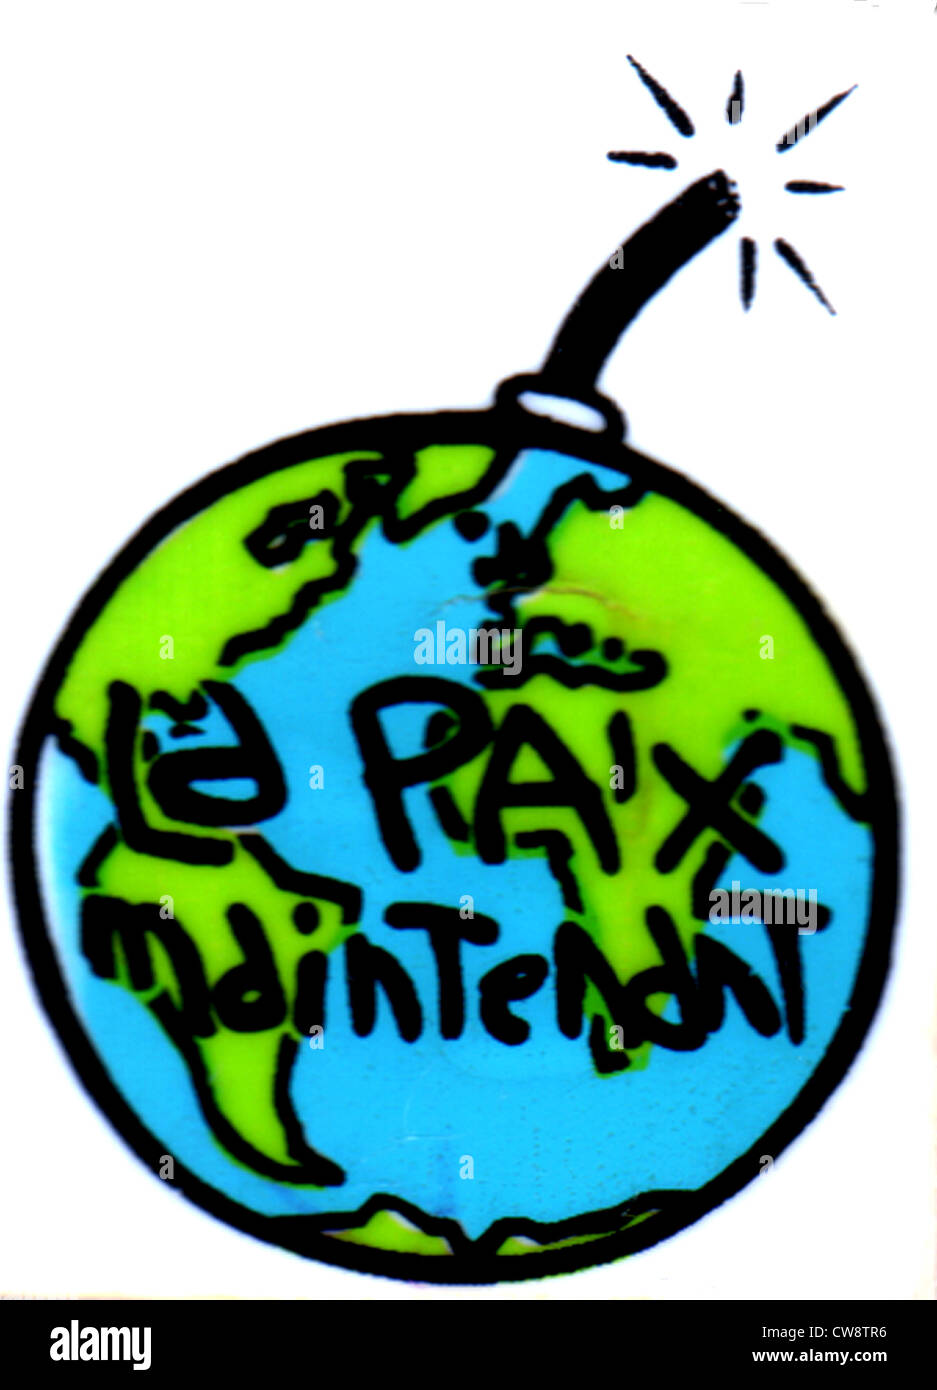 Badge sold during Gulf War : 'La paix maintenant' (Peace now) - Stock Image